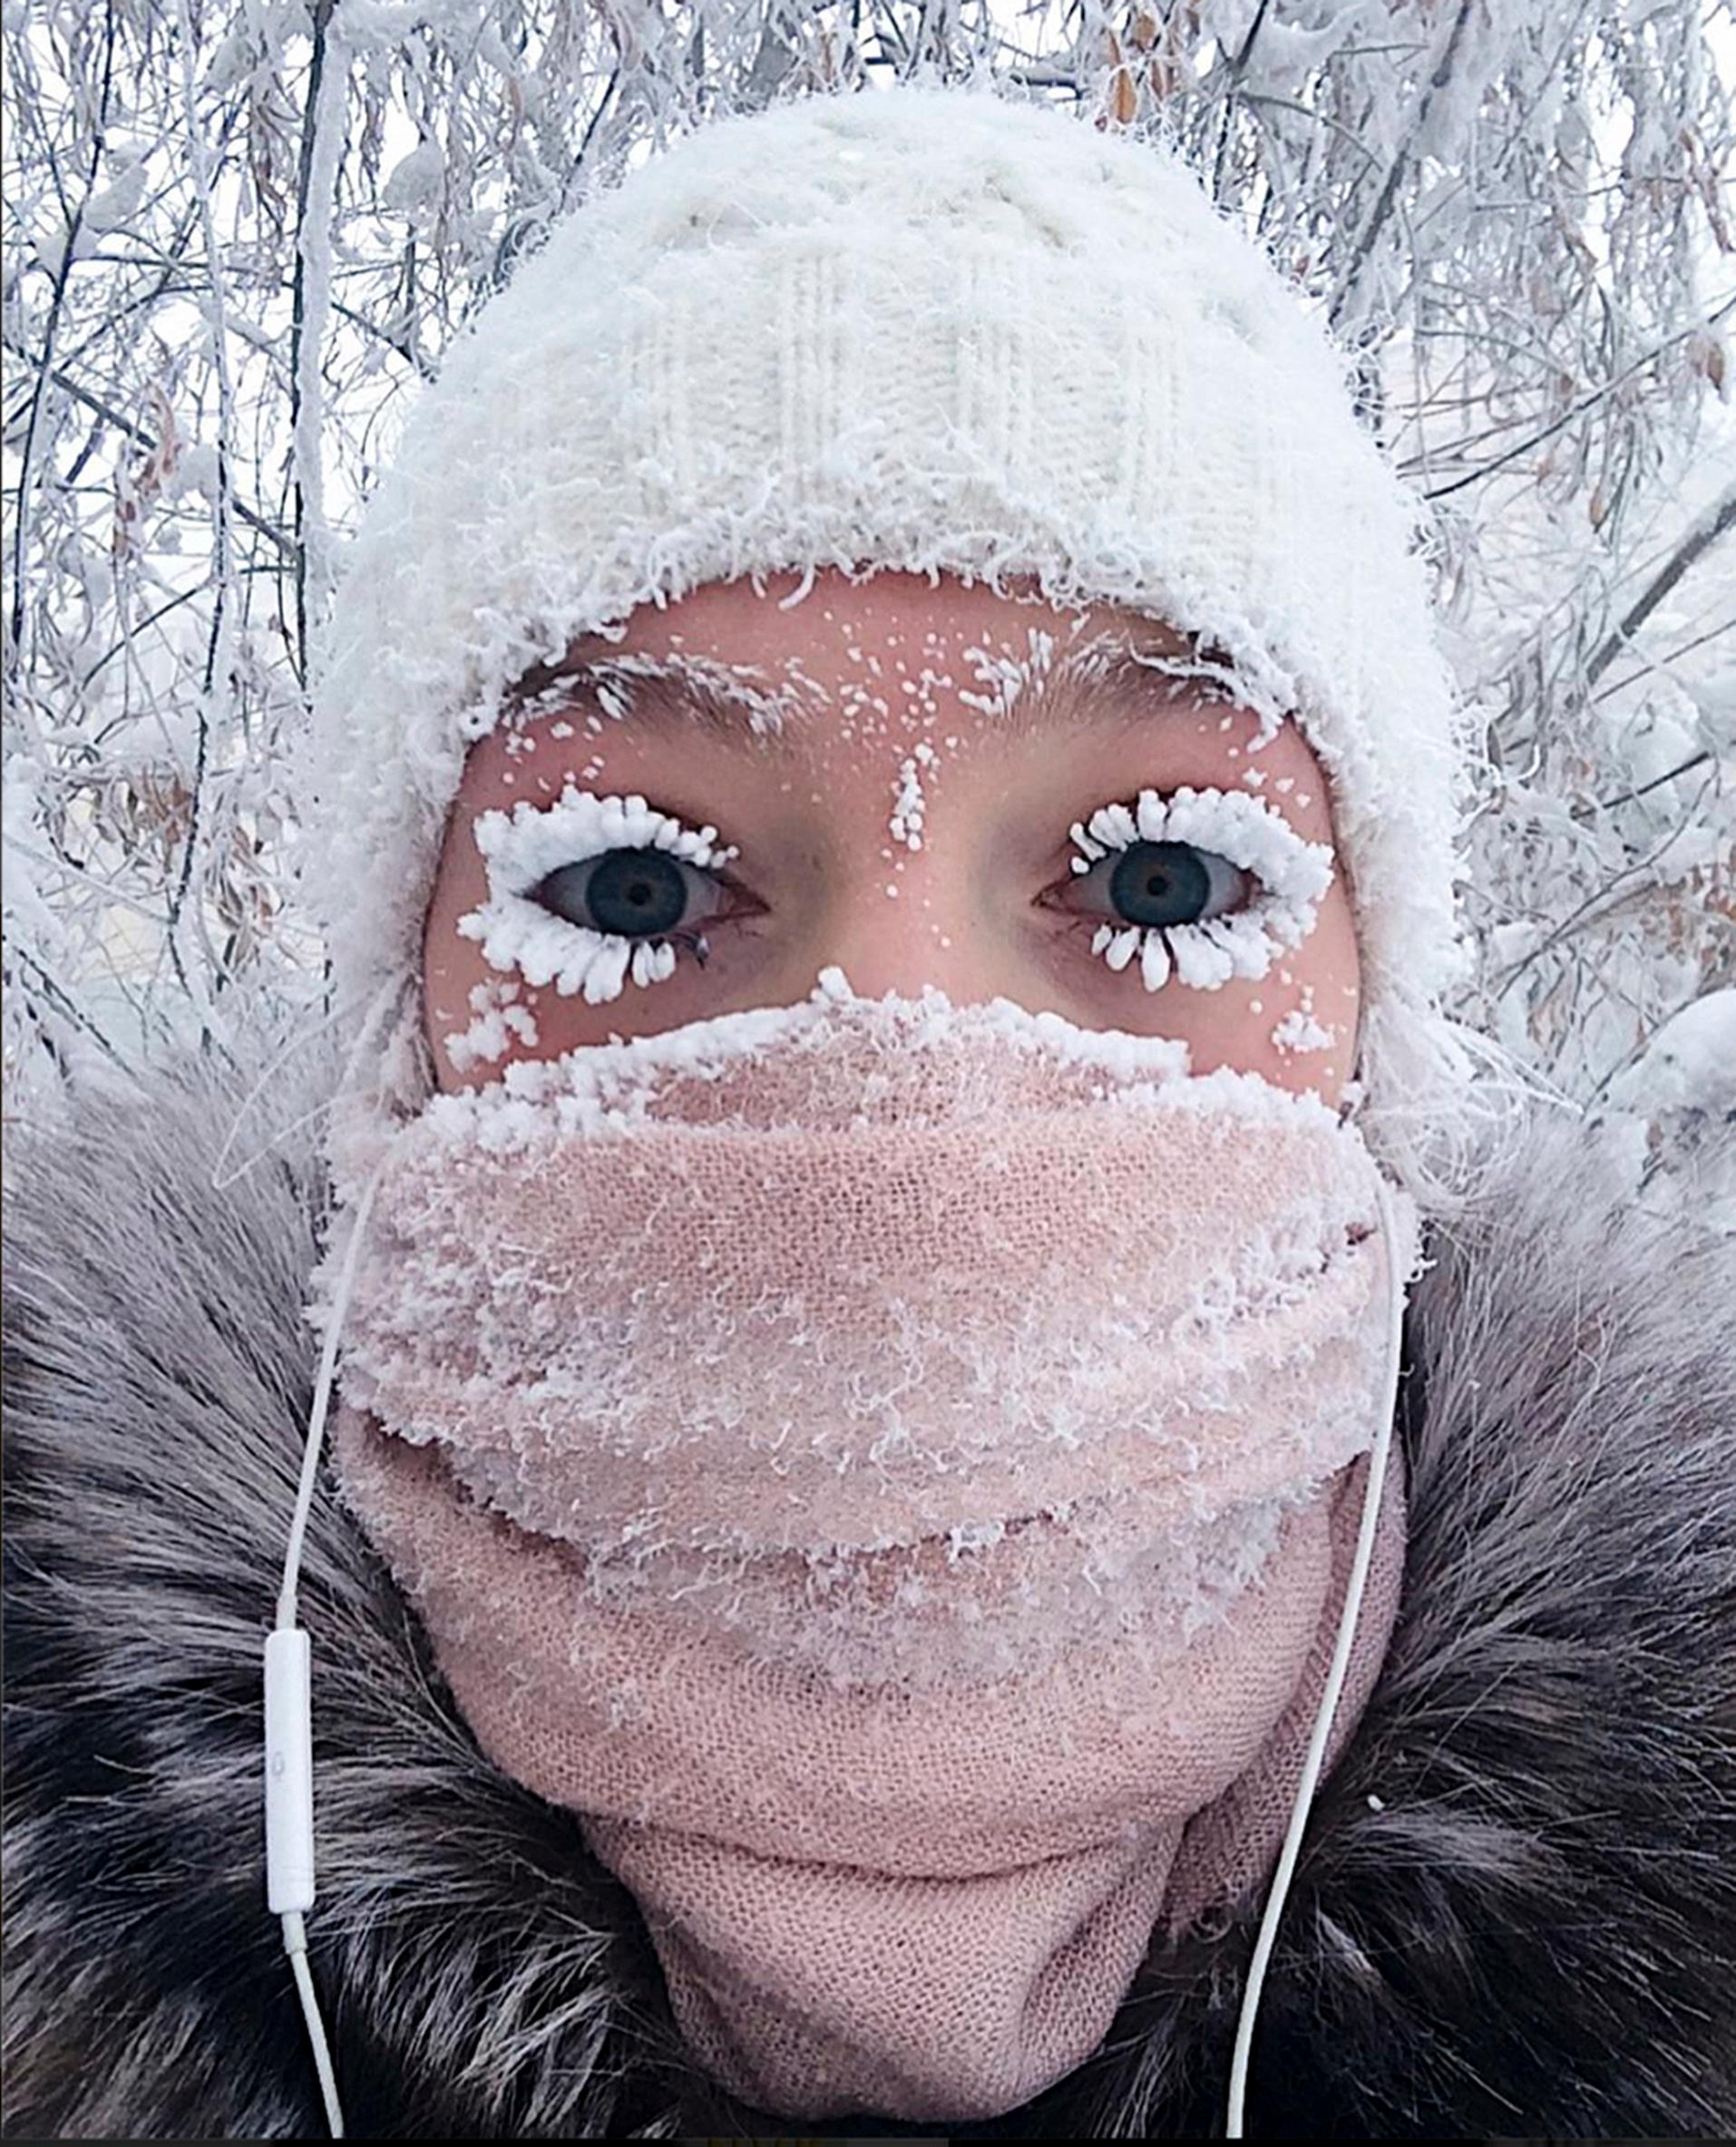 In this photo taken on Sunday, Jan. 14, 2018, Anastasia Gruzdeva poses for selfie as the Temperature dropped to about -50 degrees (-58 degrees Fahrenheit) in Yakutsk, Russia. Temperatures in the remote, diamond-rich Russian region of Yakutia have dropped to near-record lows, plunging to -67 degrees Centigrade (-88.6 degrees Fahrenheit) in some areas. (sakhalife.ru photo via AP)